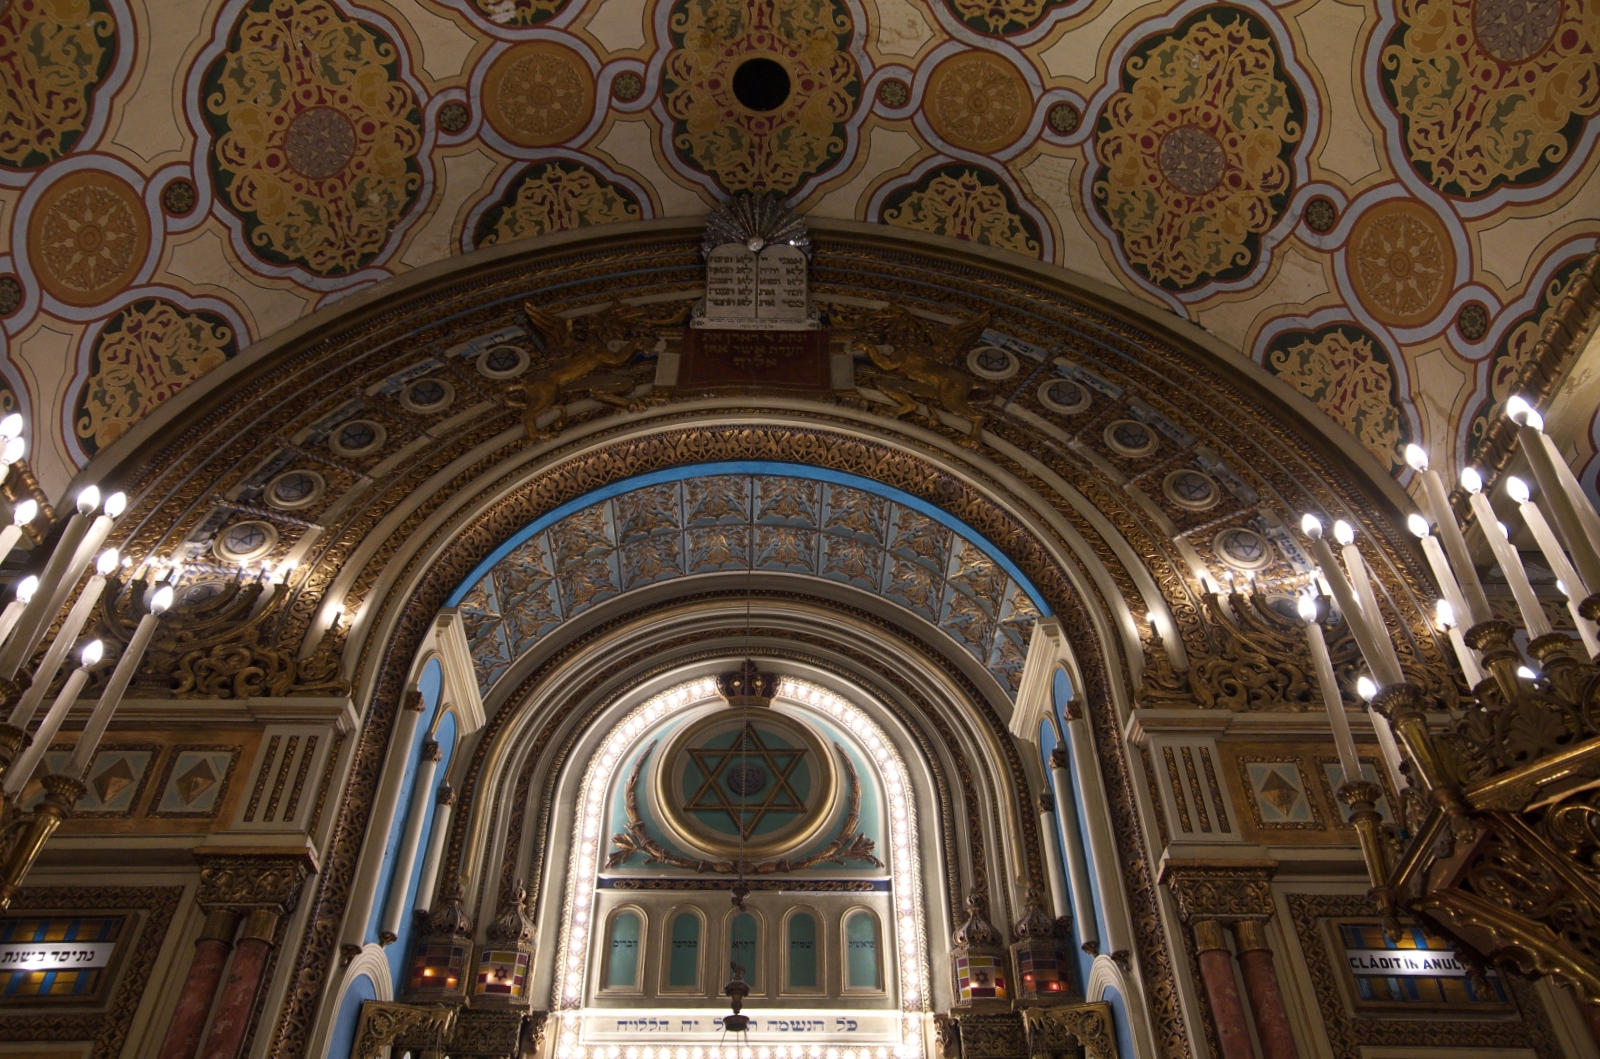 Inside the Great Synagogue. Photo: Diana Condrea